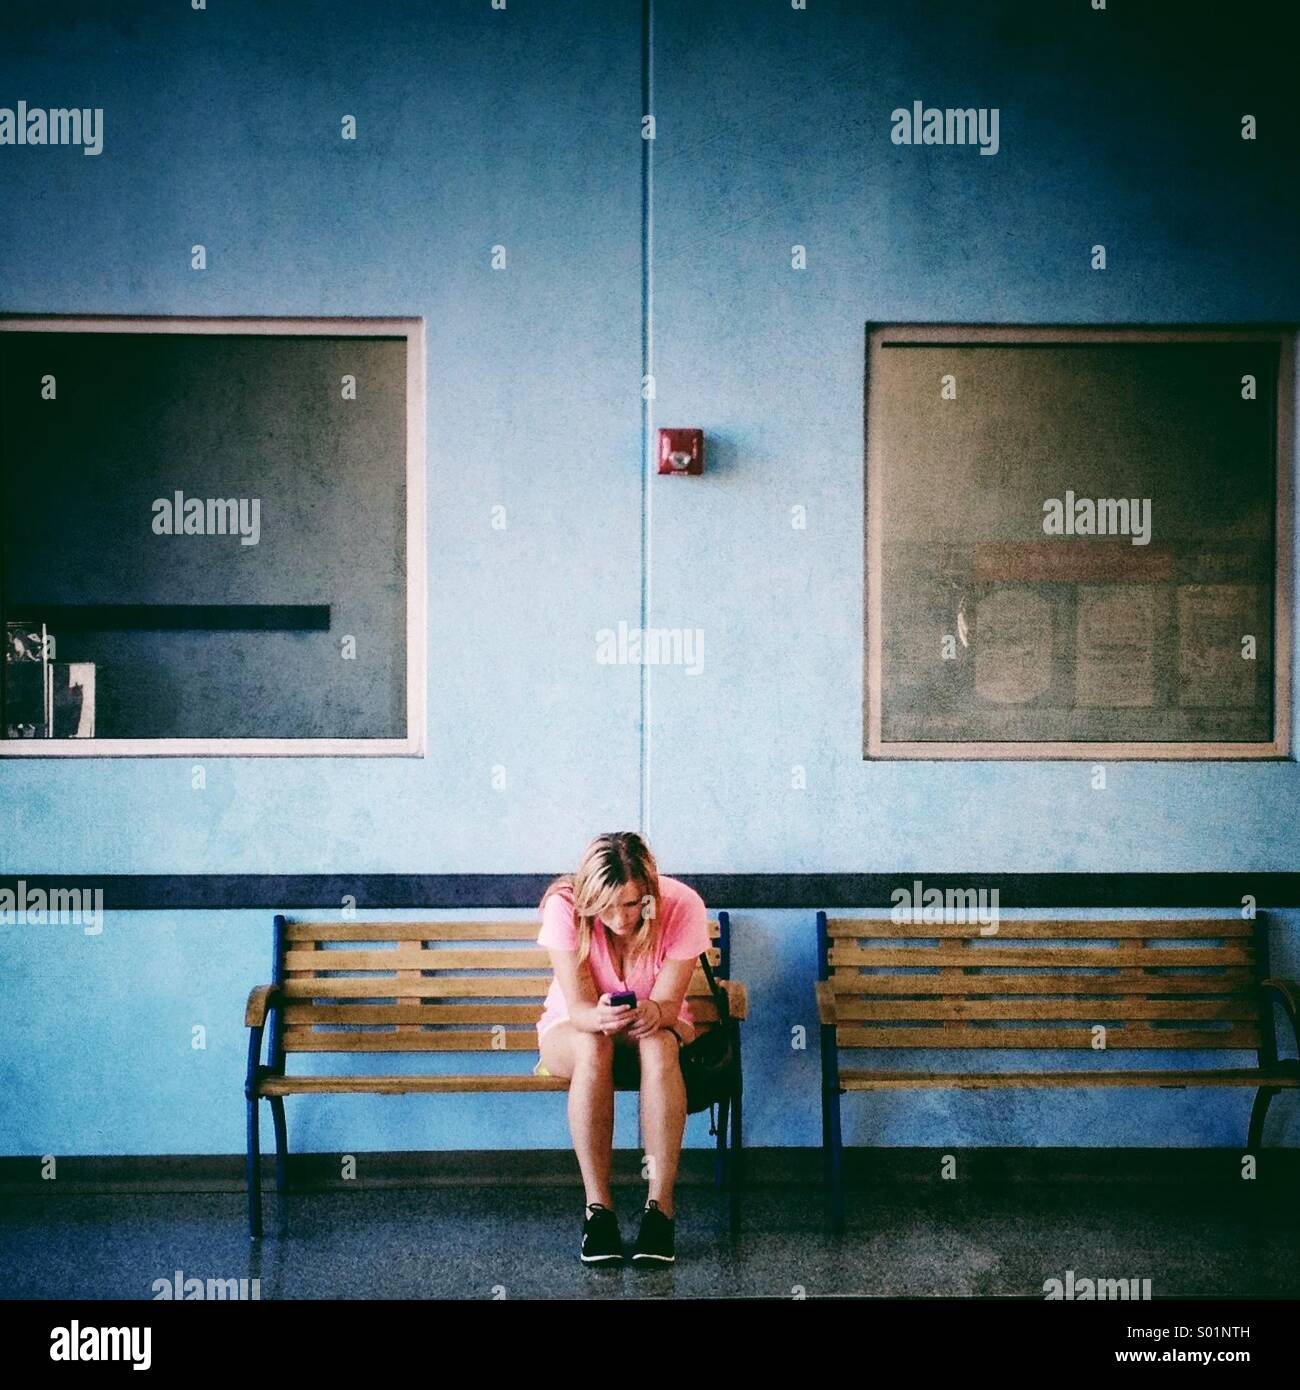 Waiting. - Stock Image